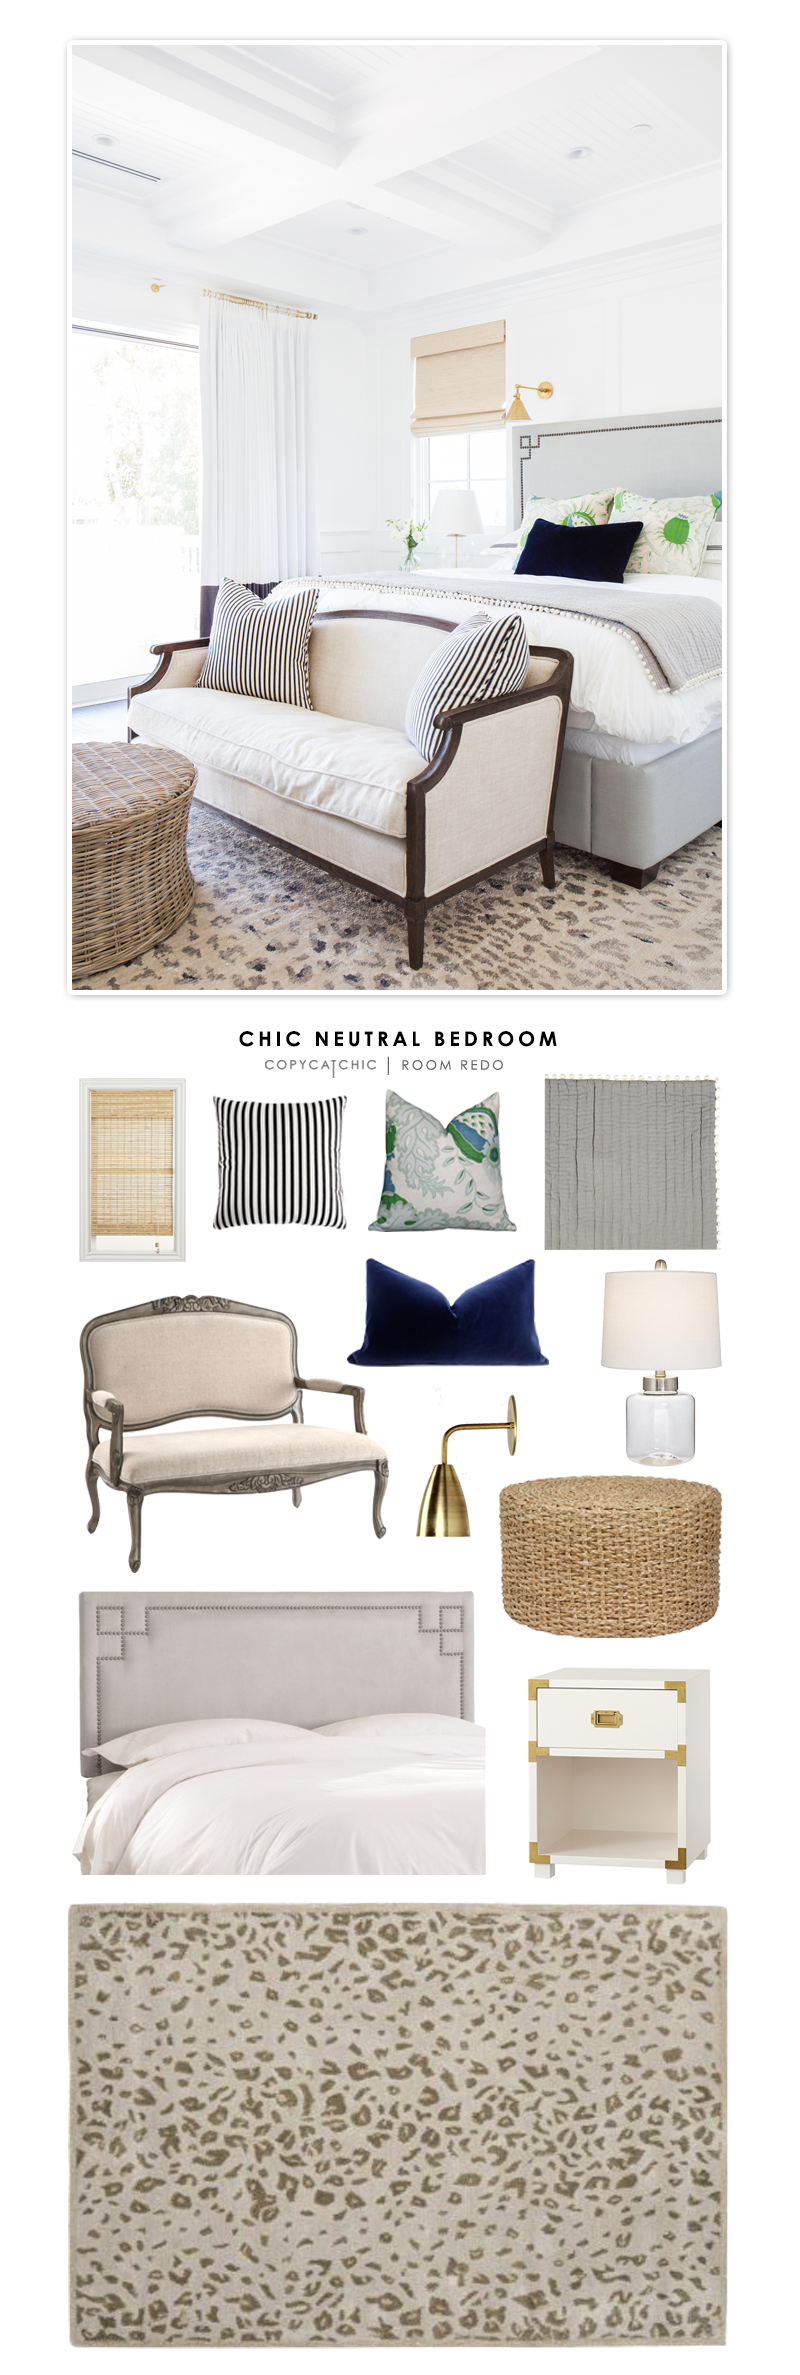 Copy Cat Chic Chic Neutral Bedroom Copycatchic